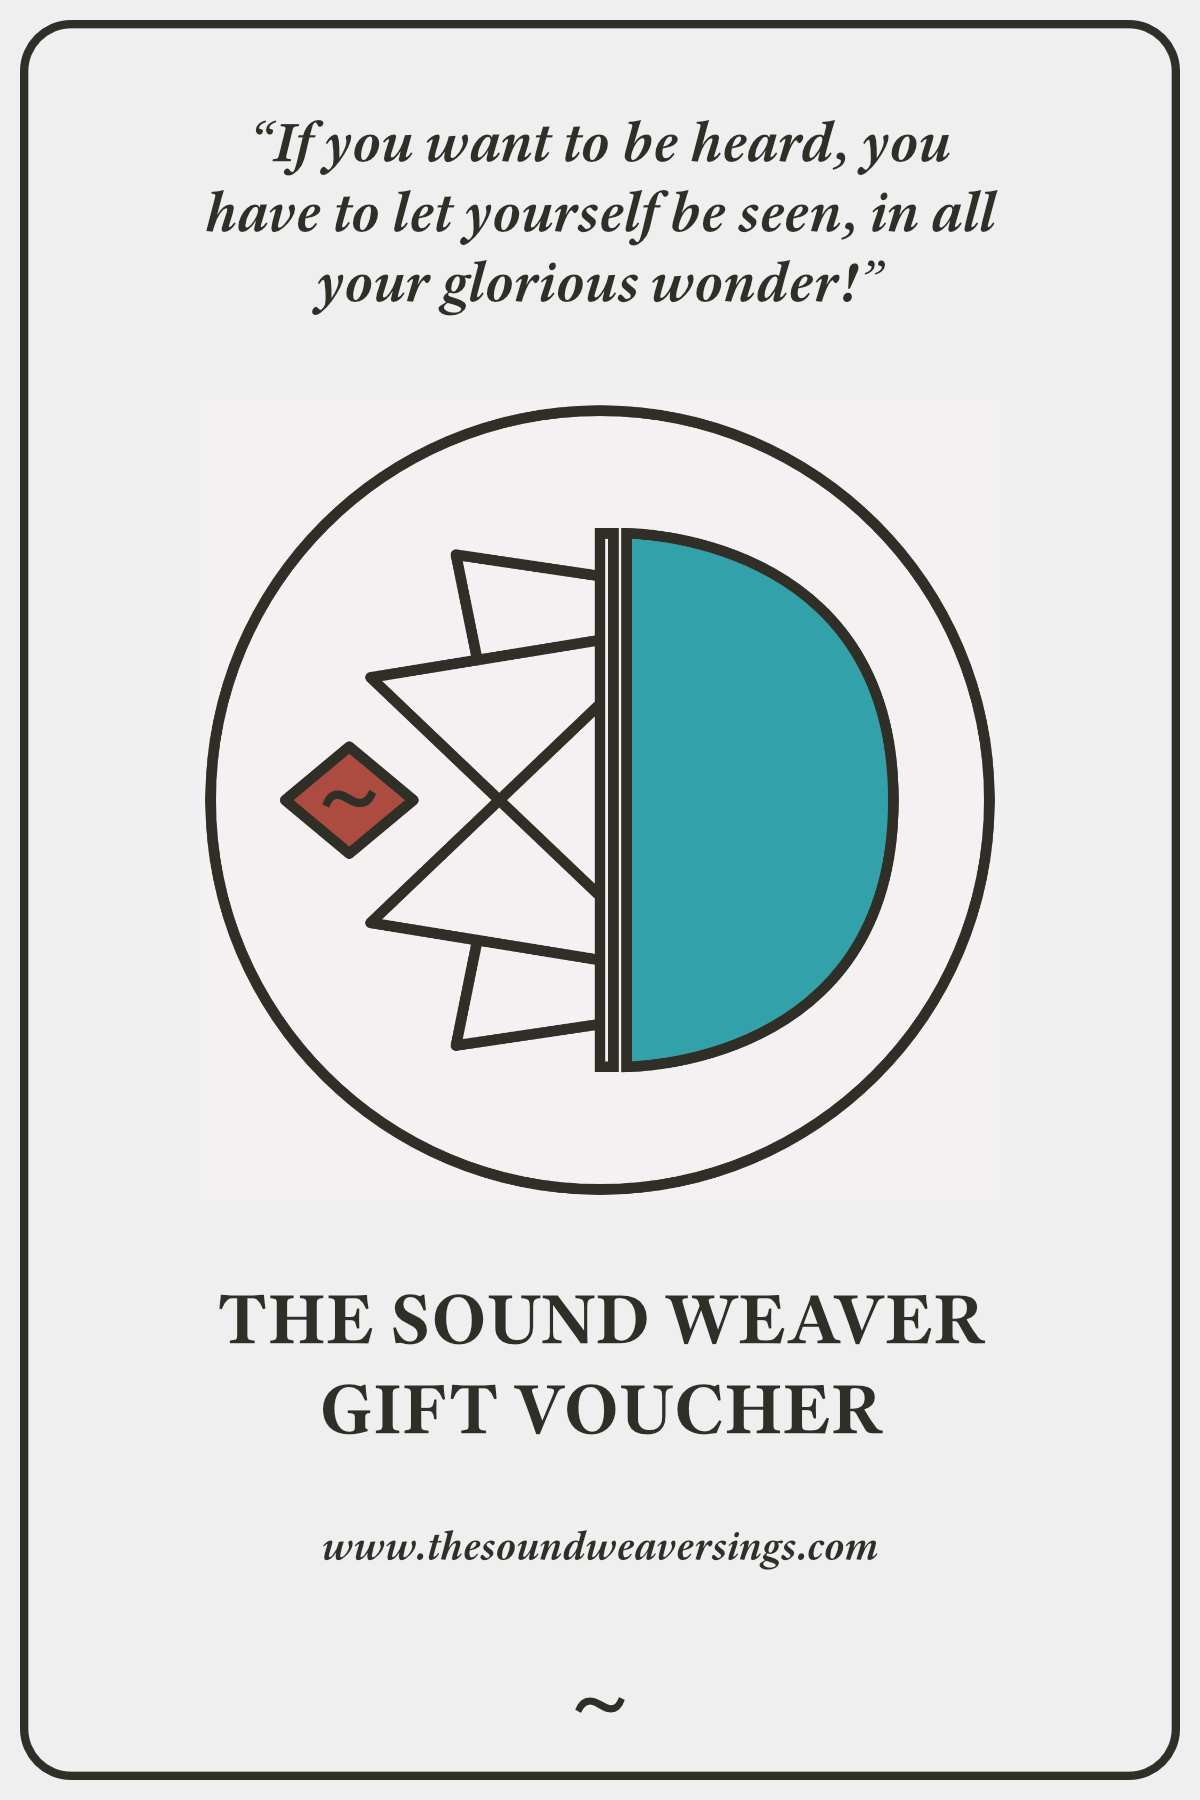 Buy Now - Singing & Vocal Gift Voucher